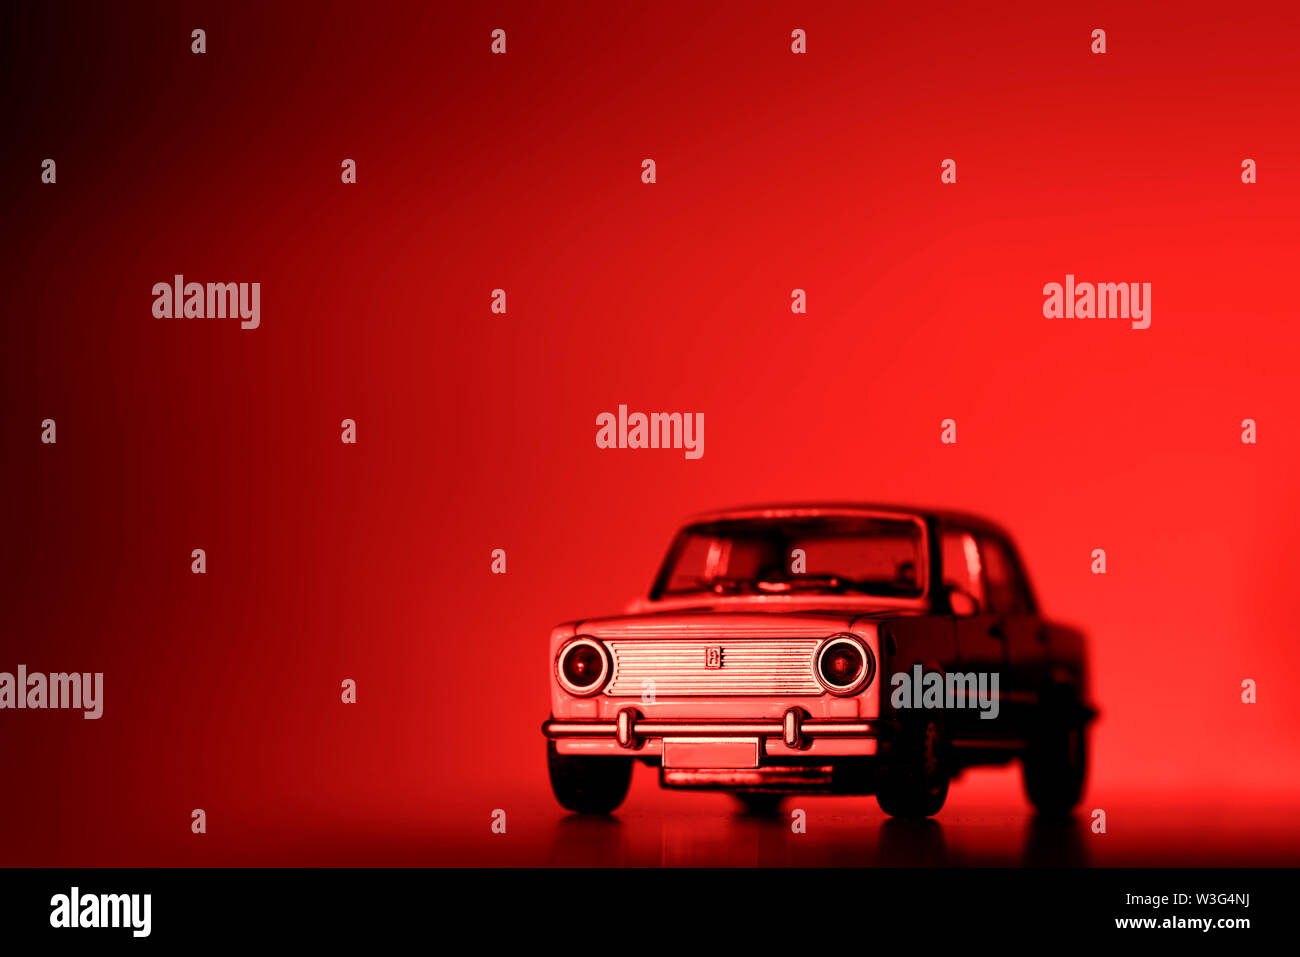 Front view of a retro car toy car on a red background. - Stock Image